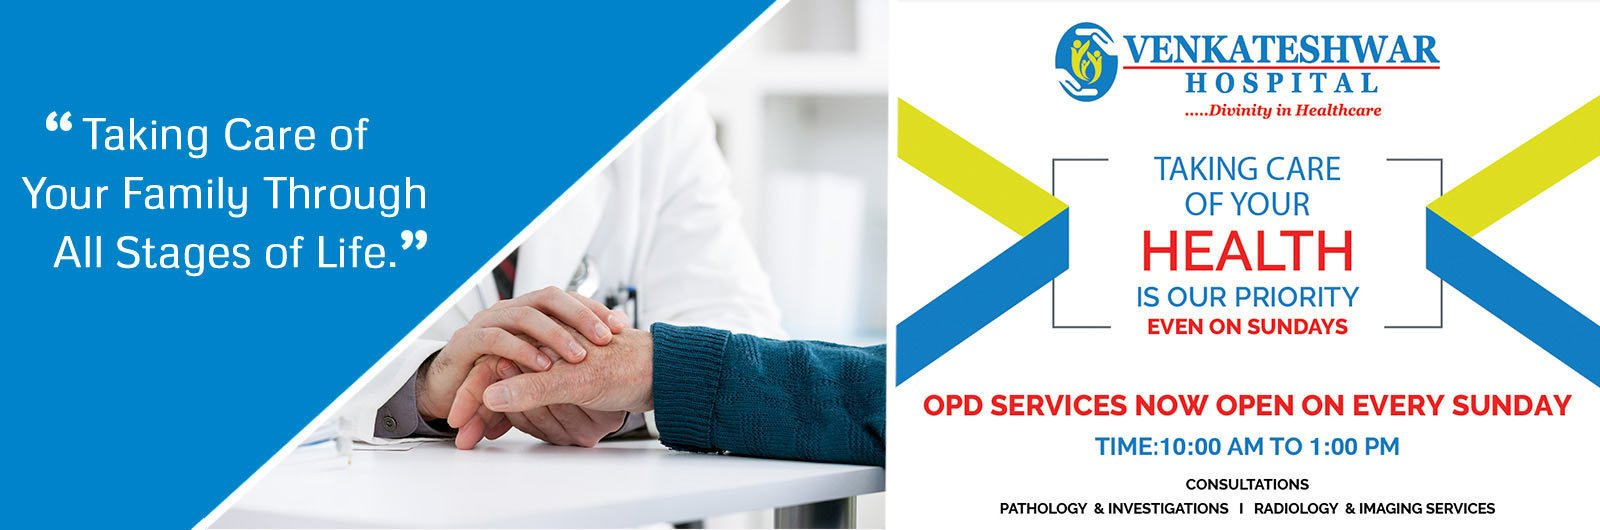 OPD Services Now Ope on Every Sunday   Health Services